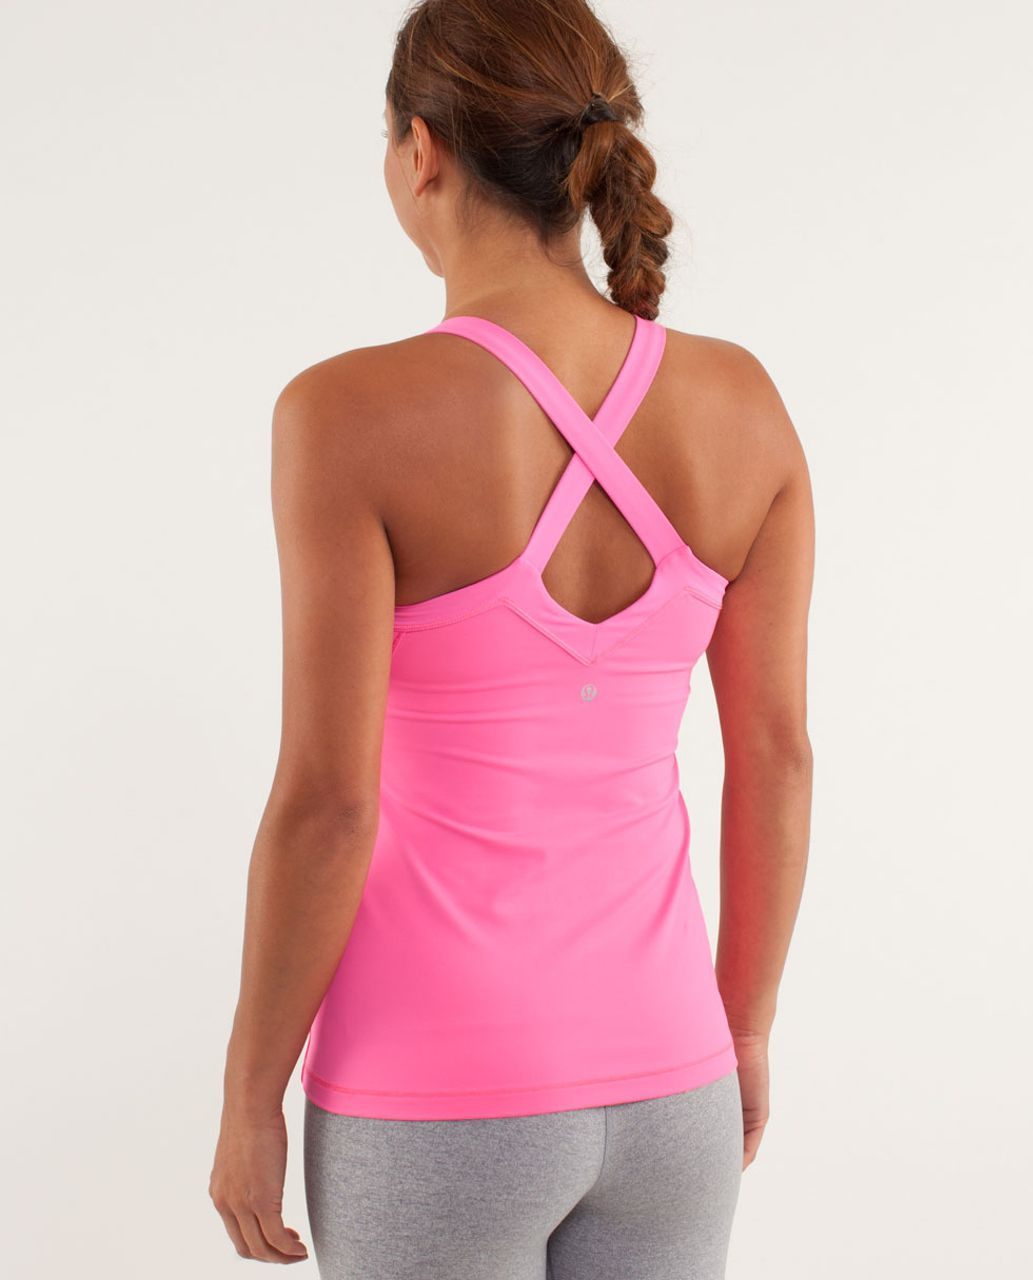 Lululemon Run:  Mile A Minute Tank - Pinkelicious